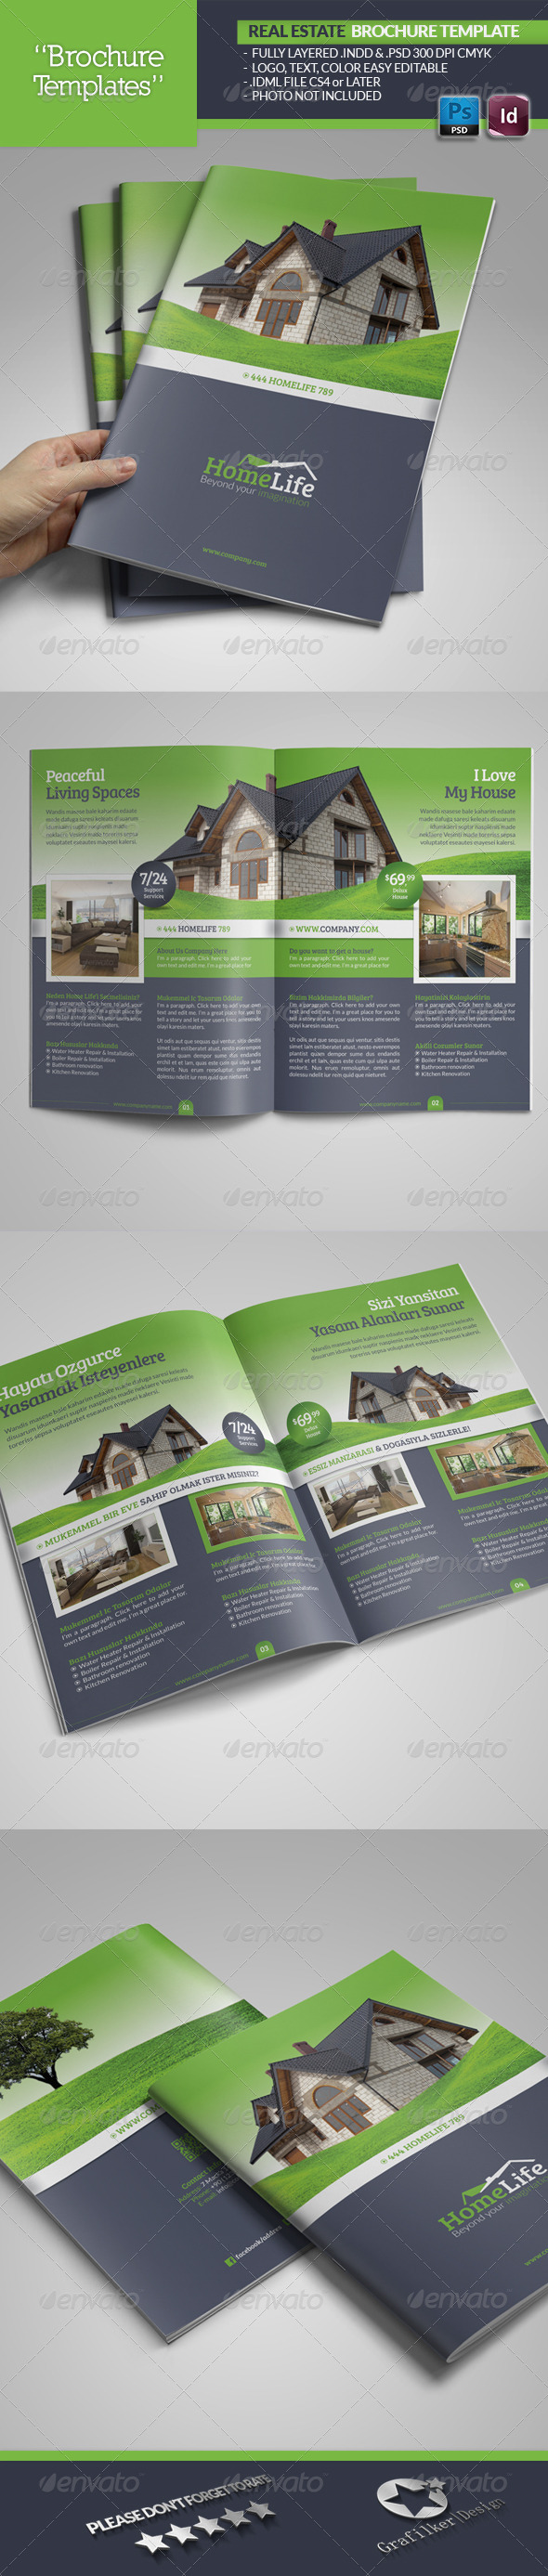 Real Estate Brochure Template - Brochures Print Templates